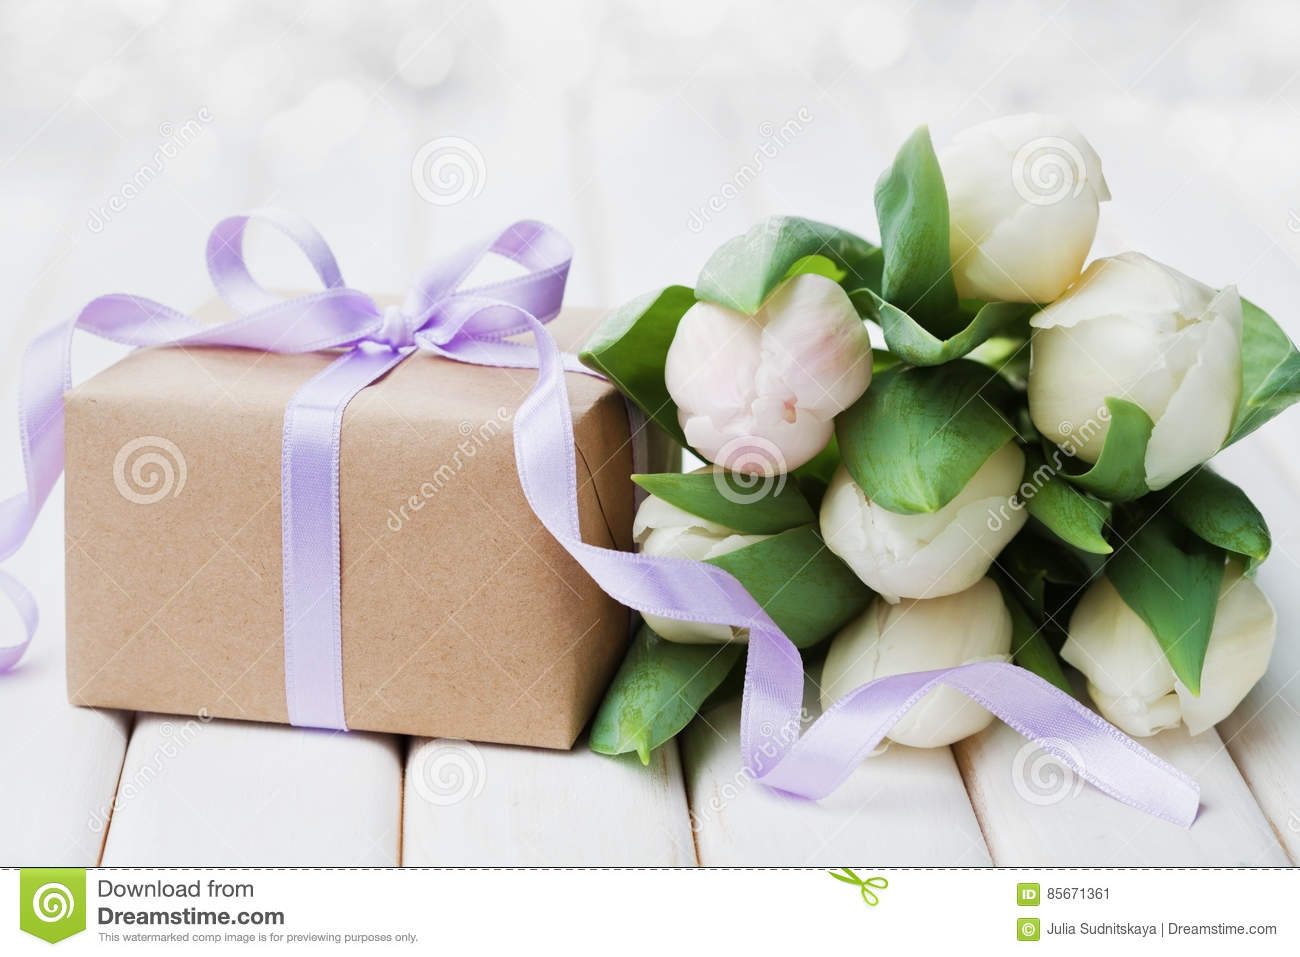 Spring tulip flowers and gift box with bow ribbon on white table. Greeting card for Birthday, Womens or Mothers Day.